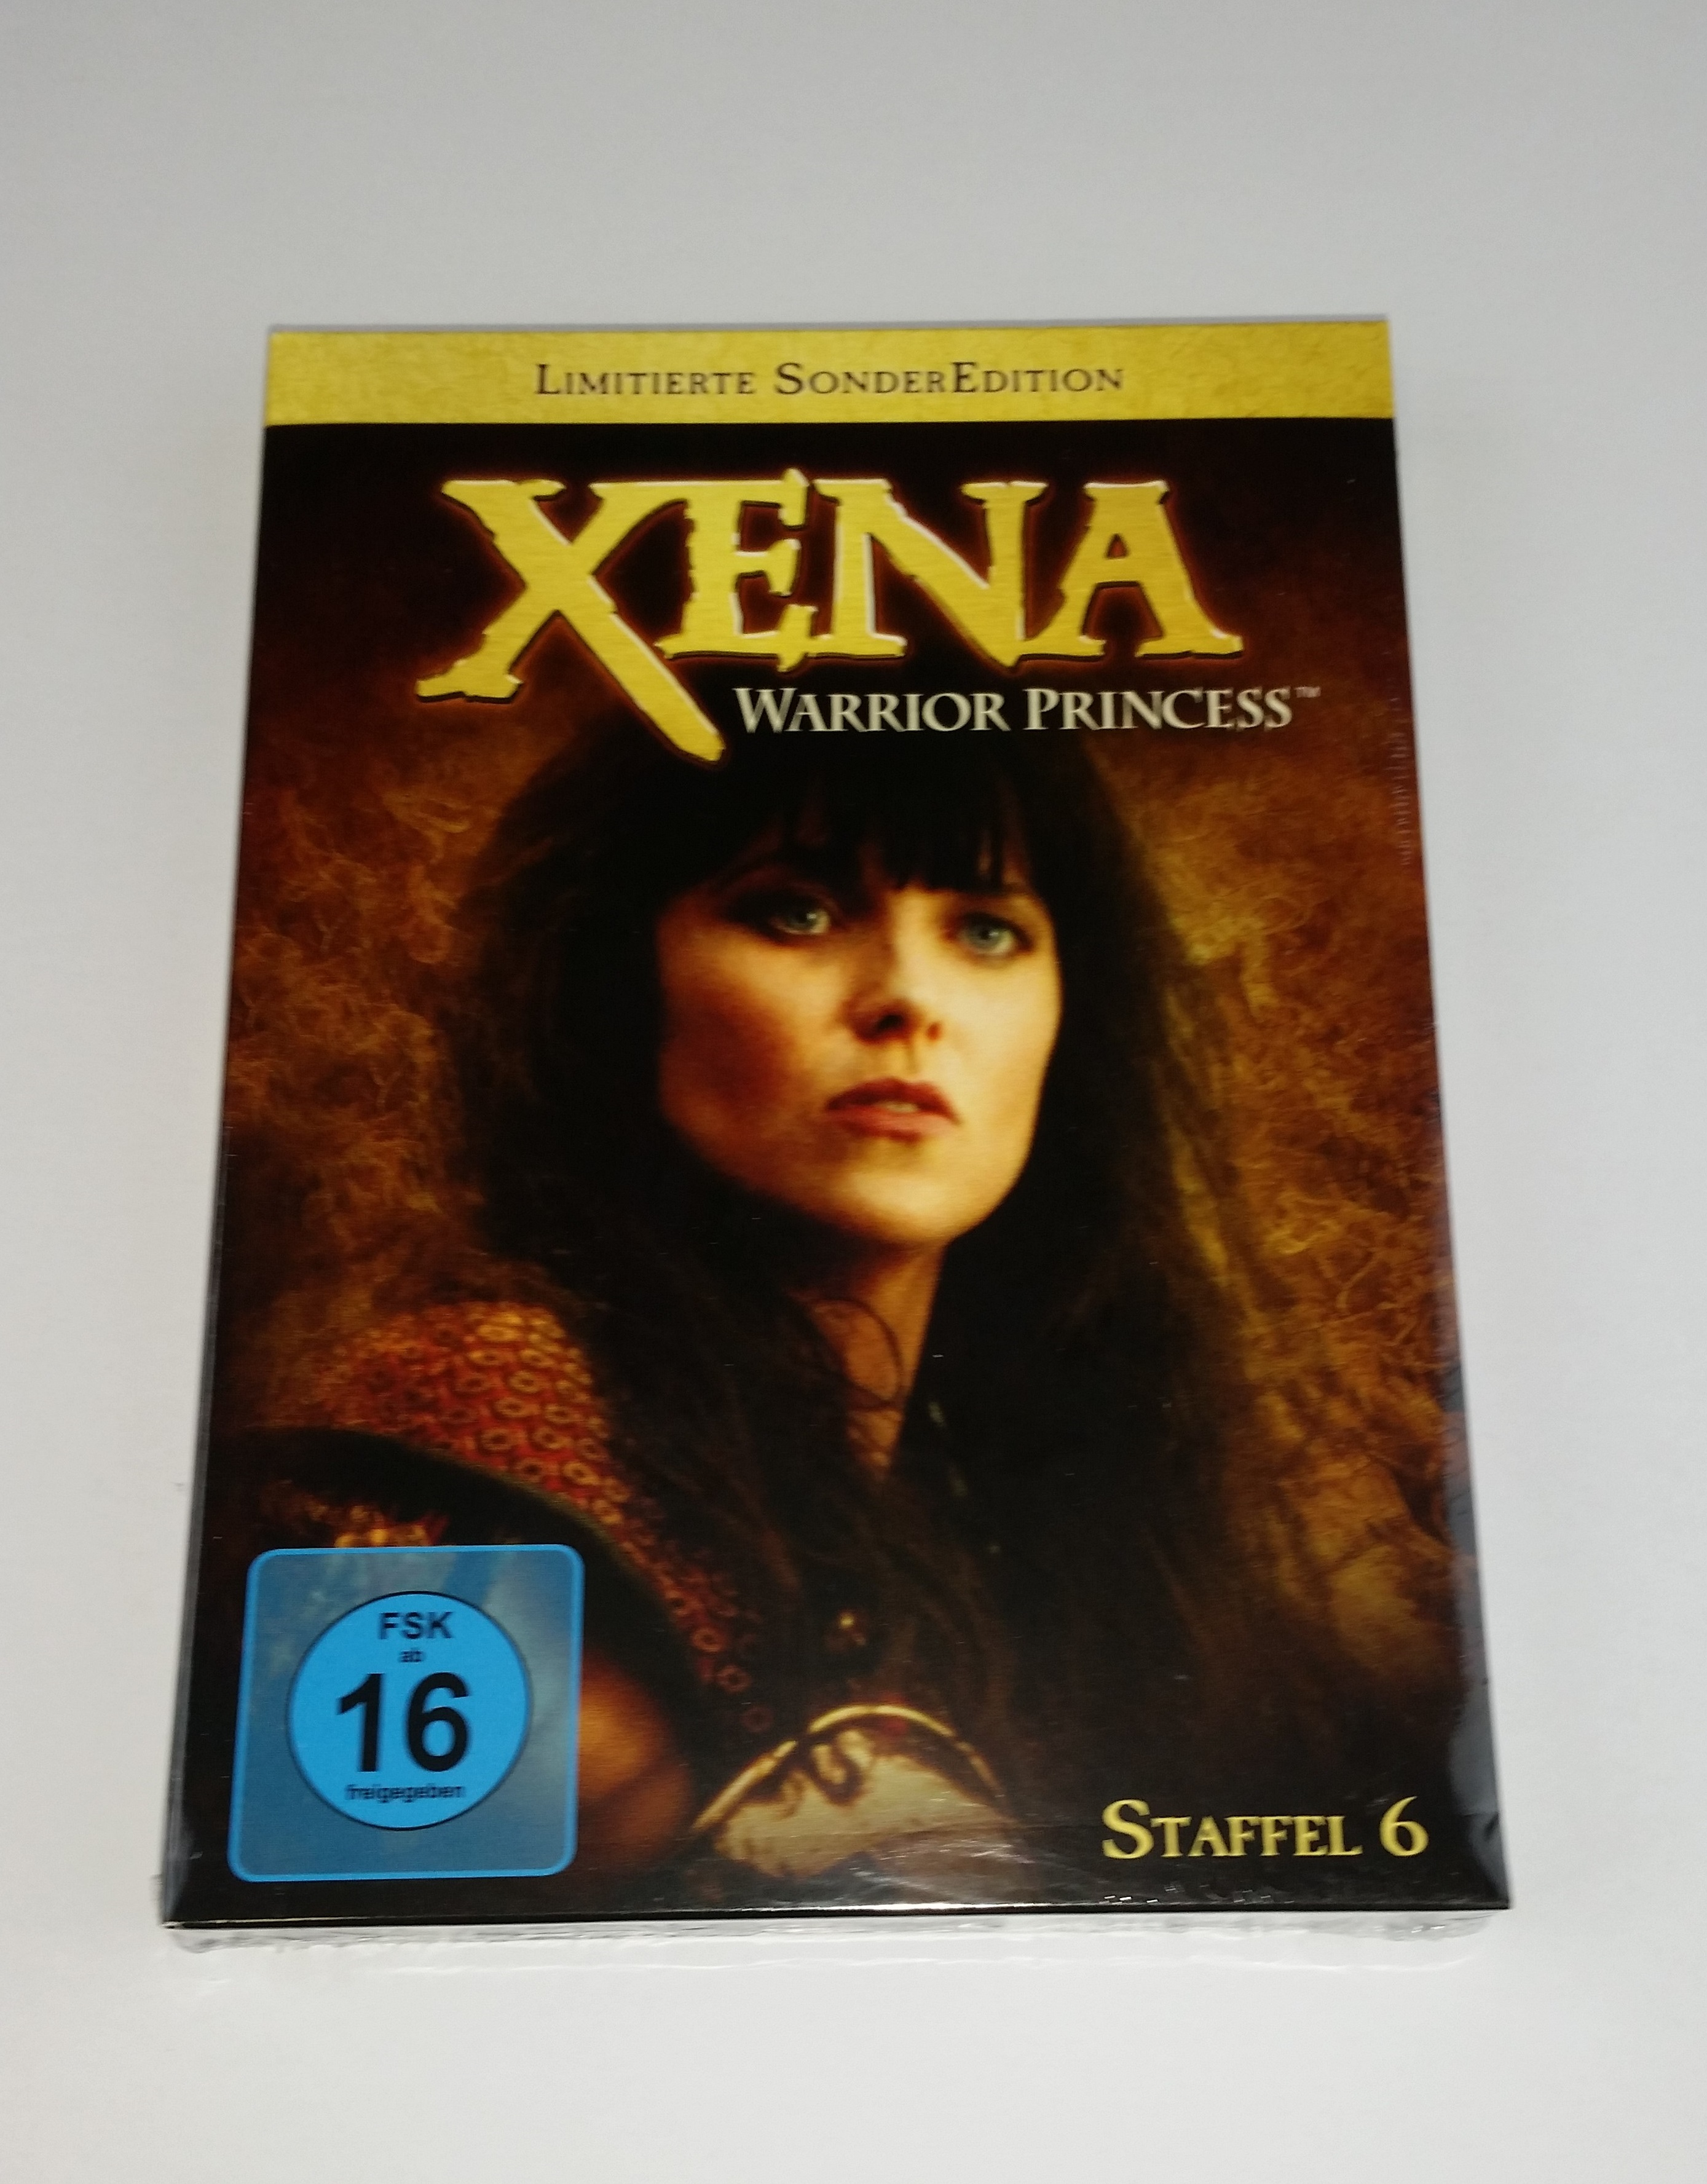 Xena - Staffel 6 *Limited Edition*